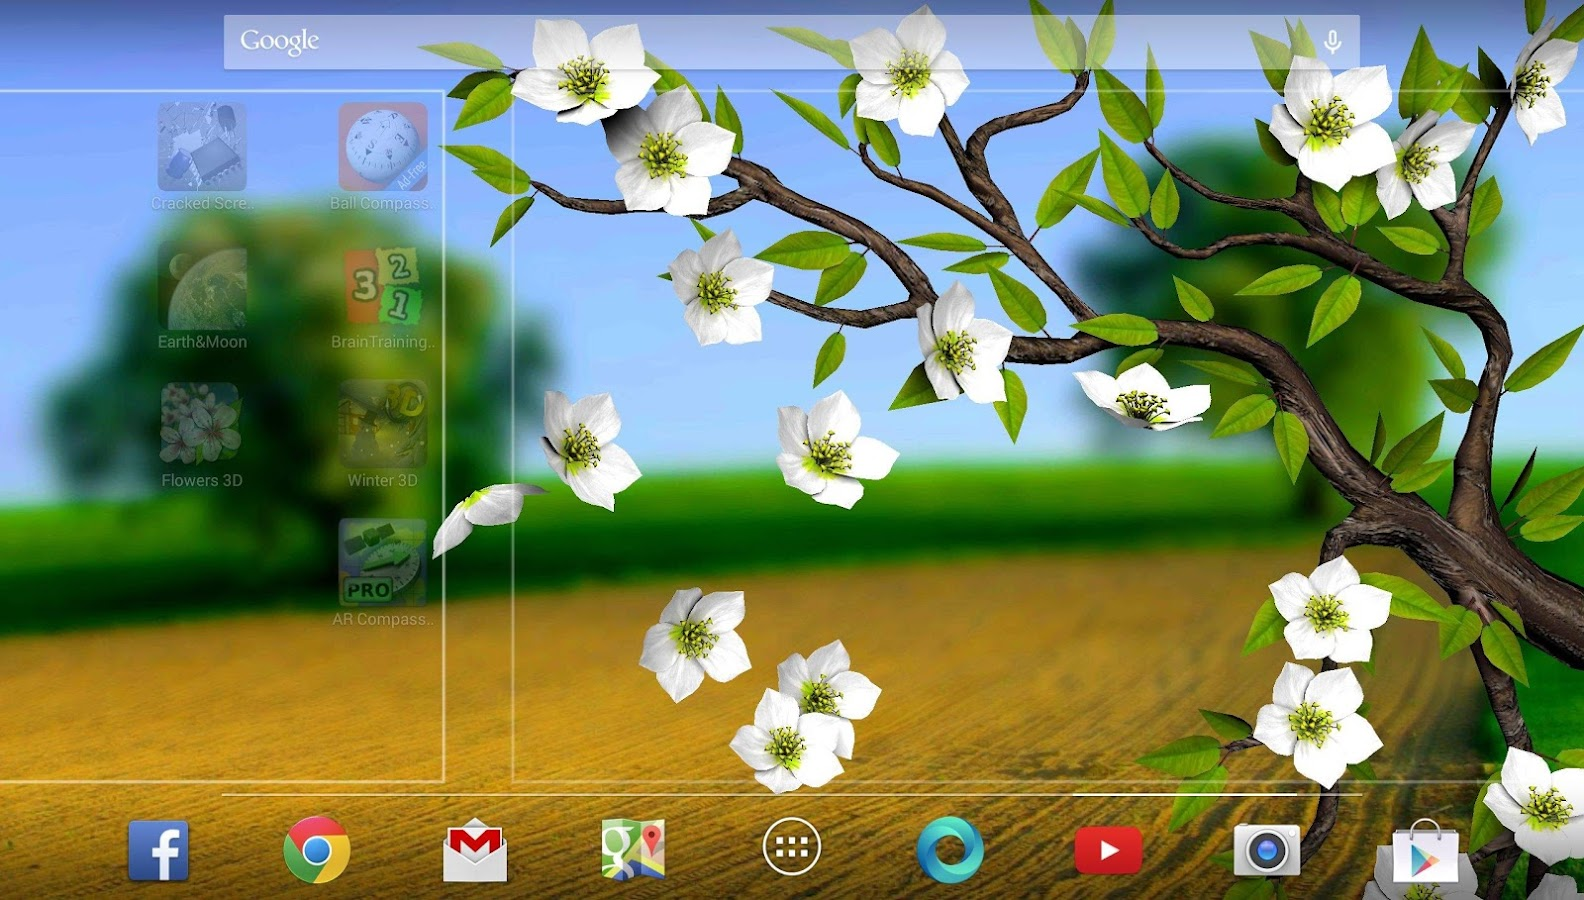 Parallax 3d Effect Wallpaper Pro Spring Flowers 3d Parallax Pro Android Apps On Google Play